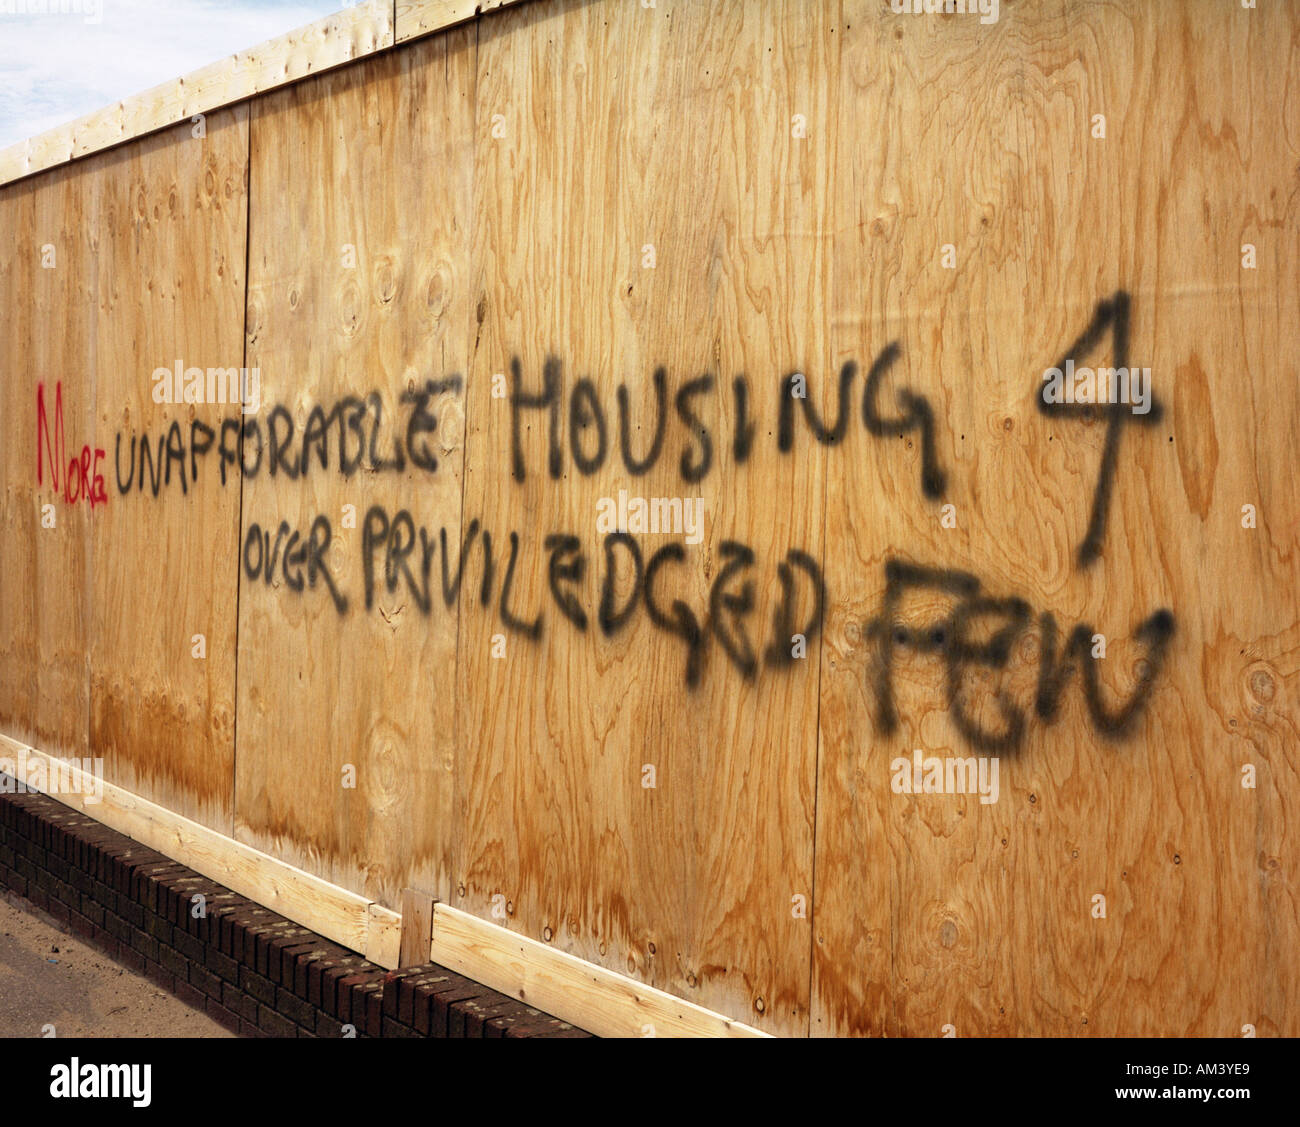 Graffitti on property boards - Stock Image